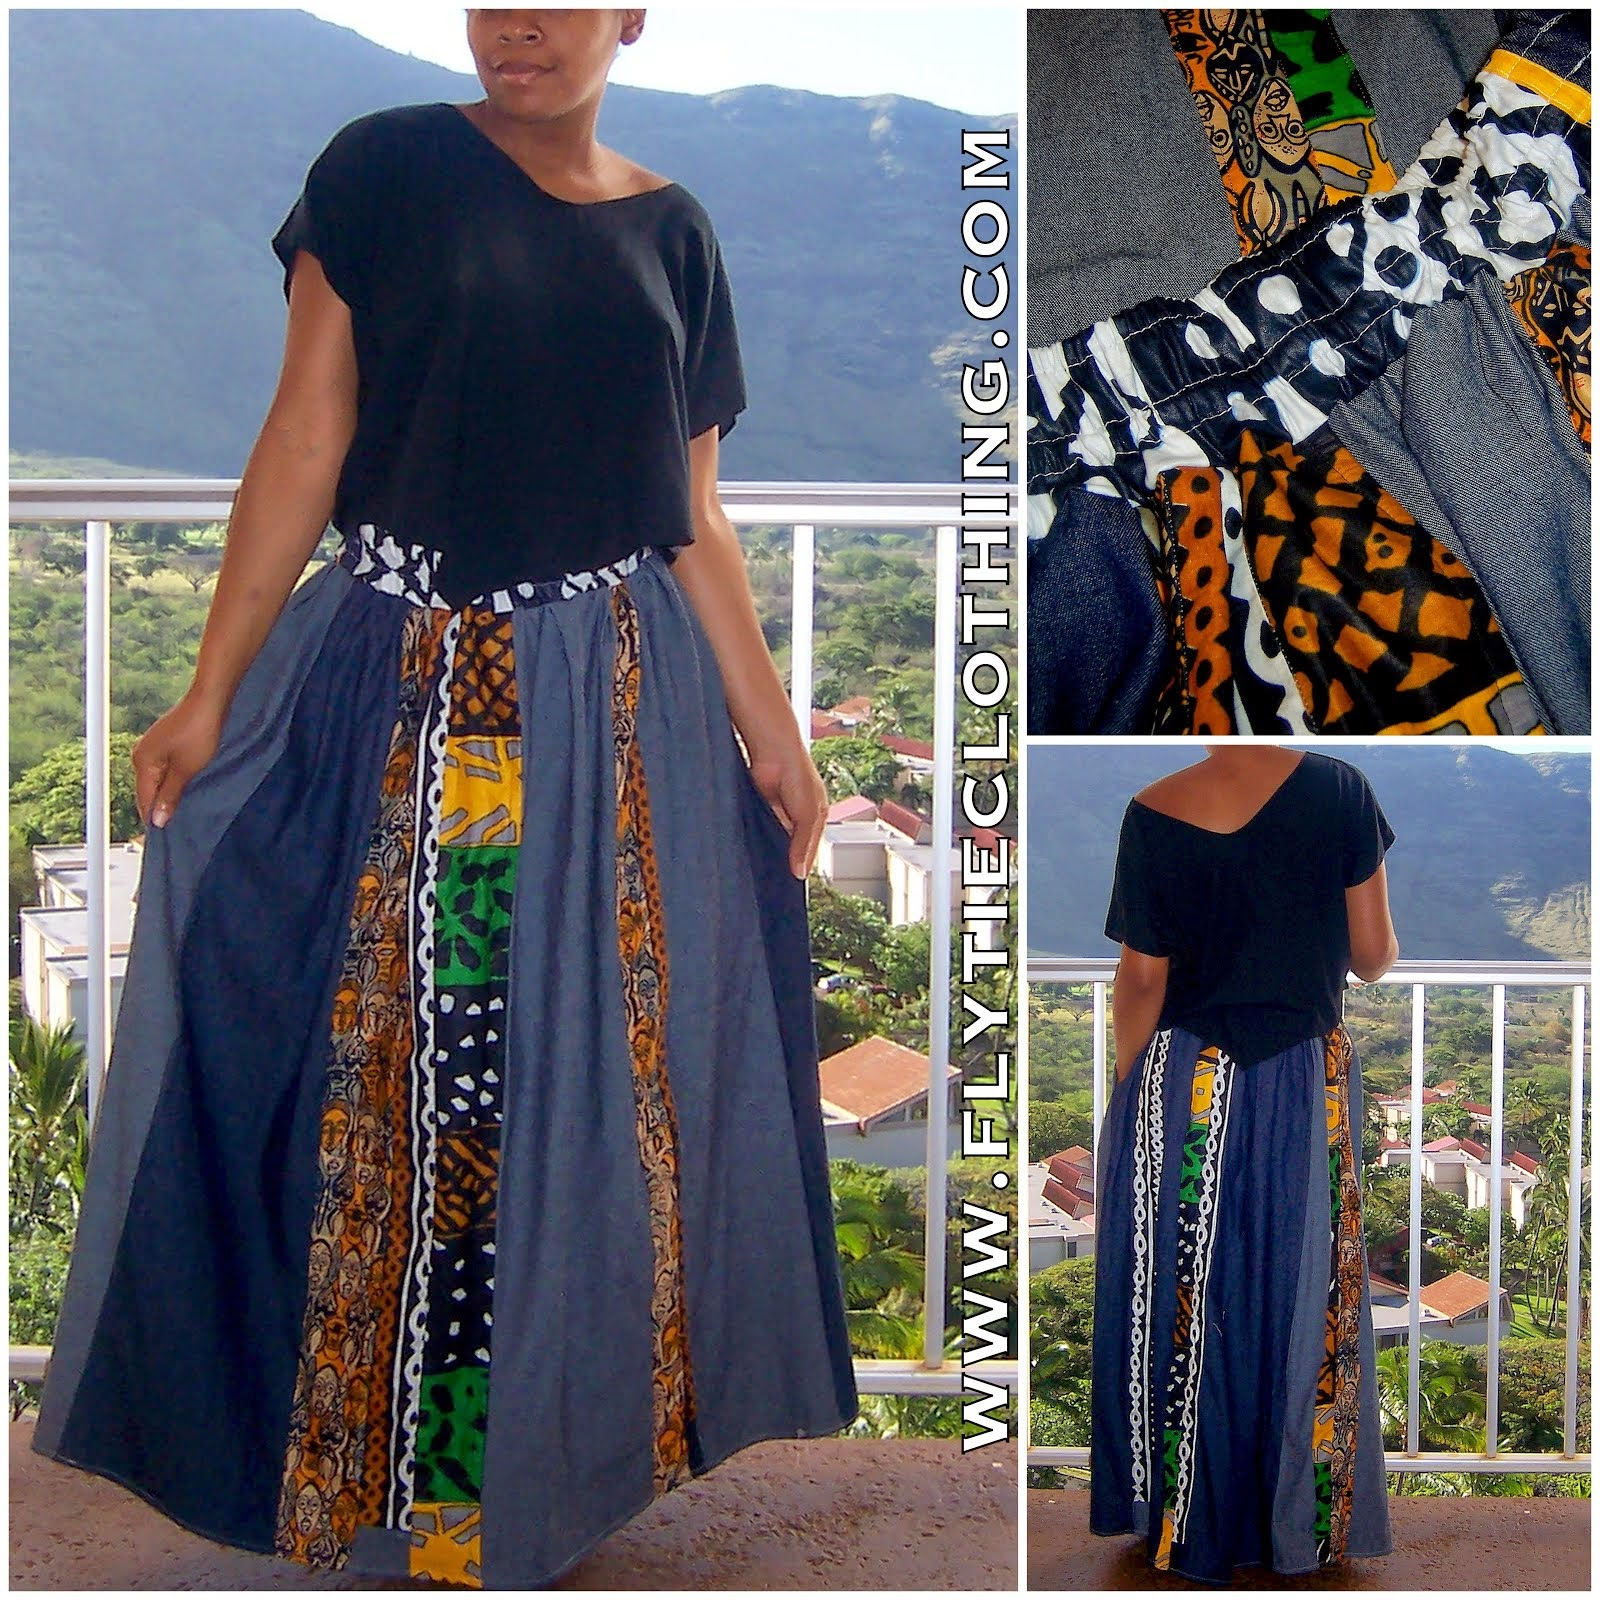 Denim/Kente Pleated Pathwork Skirt